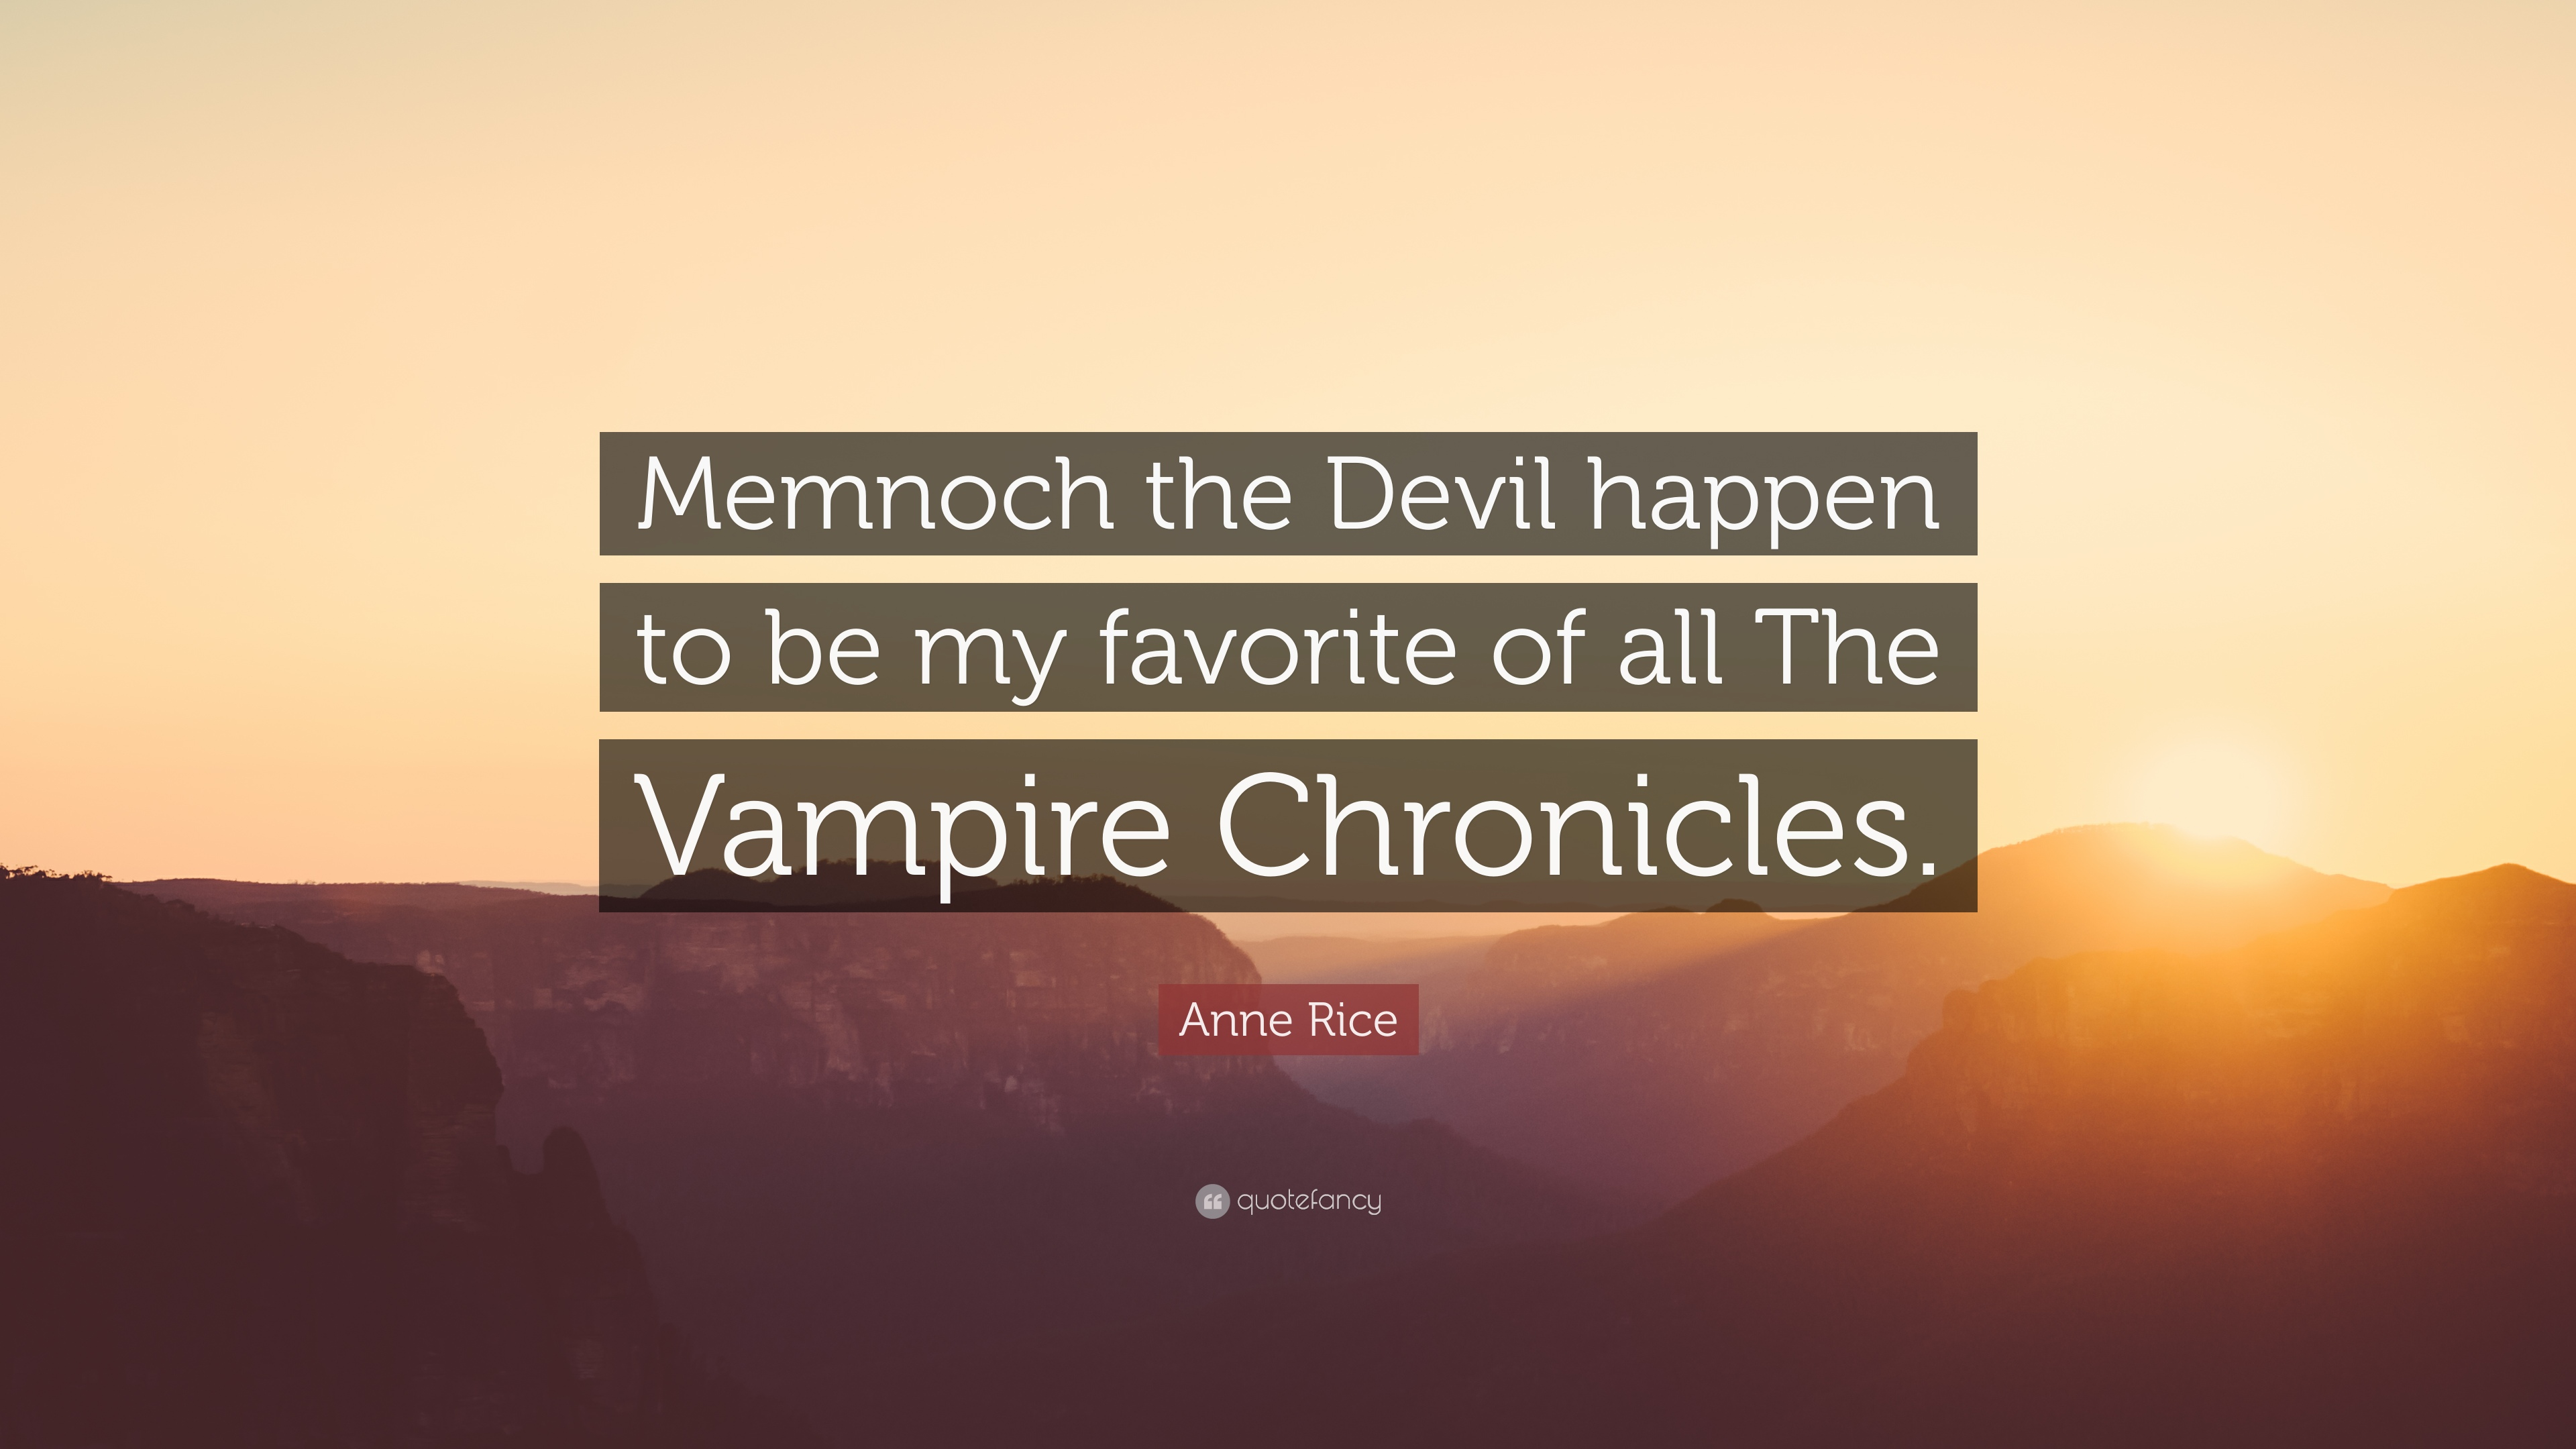 memnoch the devil by anne rice essay A review of the novel memnoch, the devil, by anne rice.